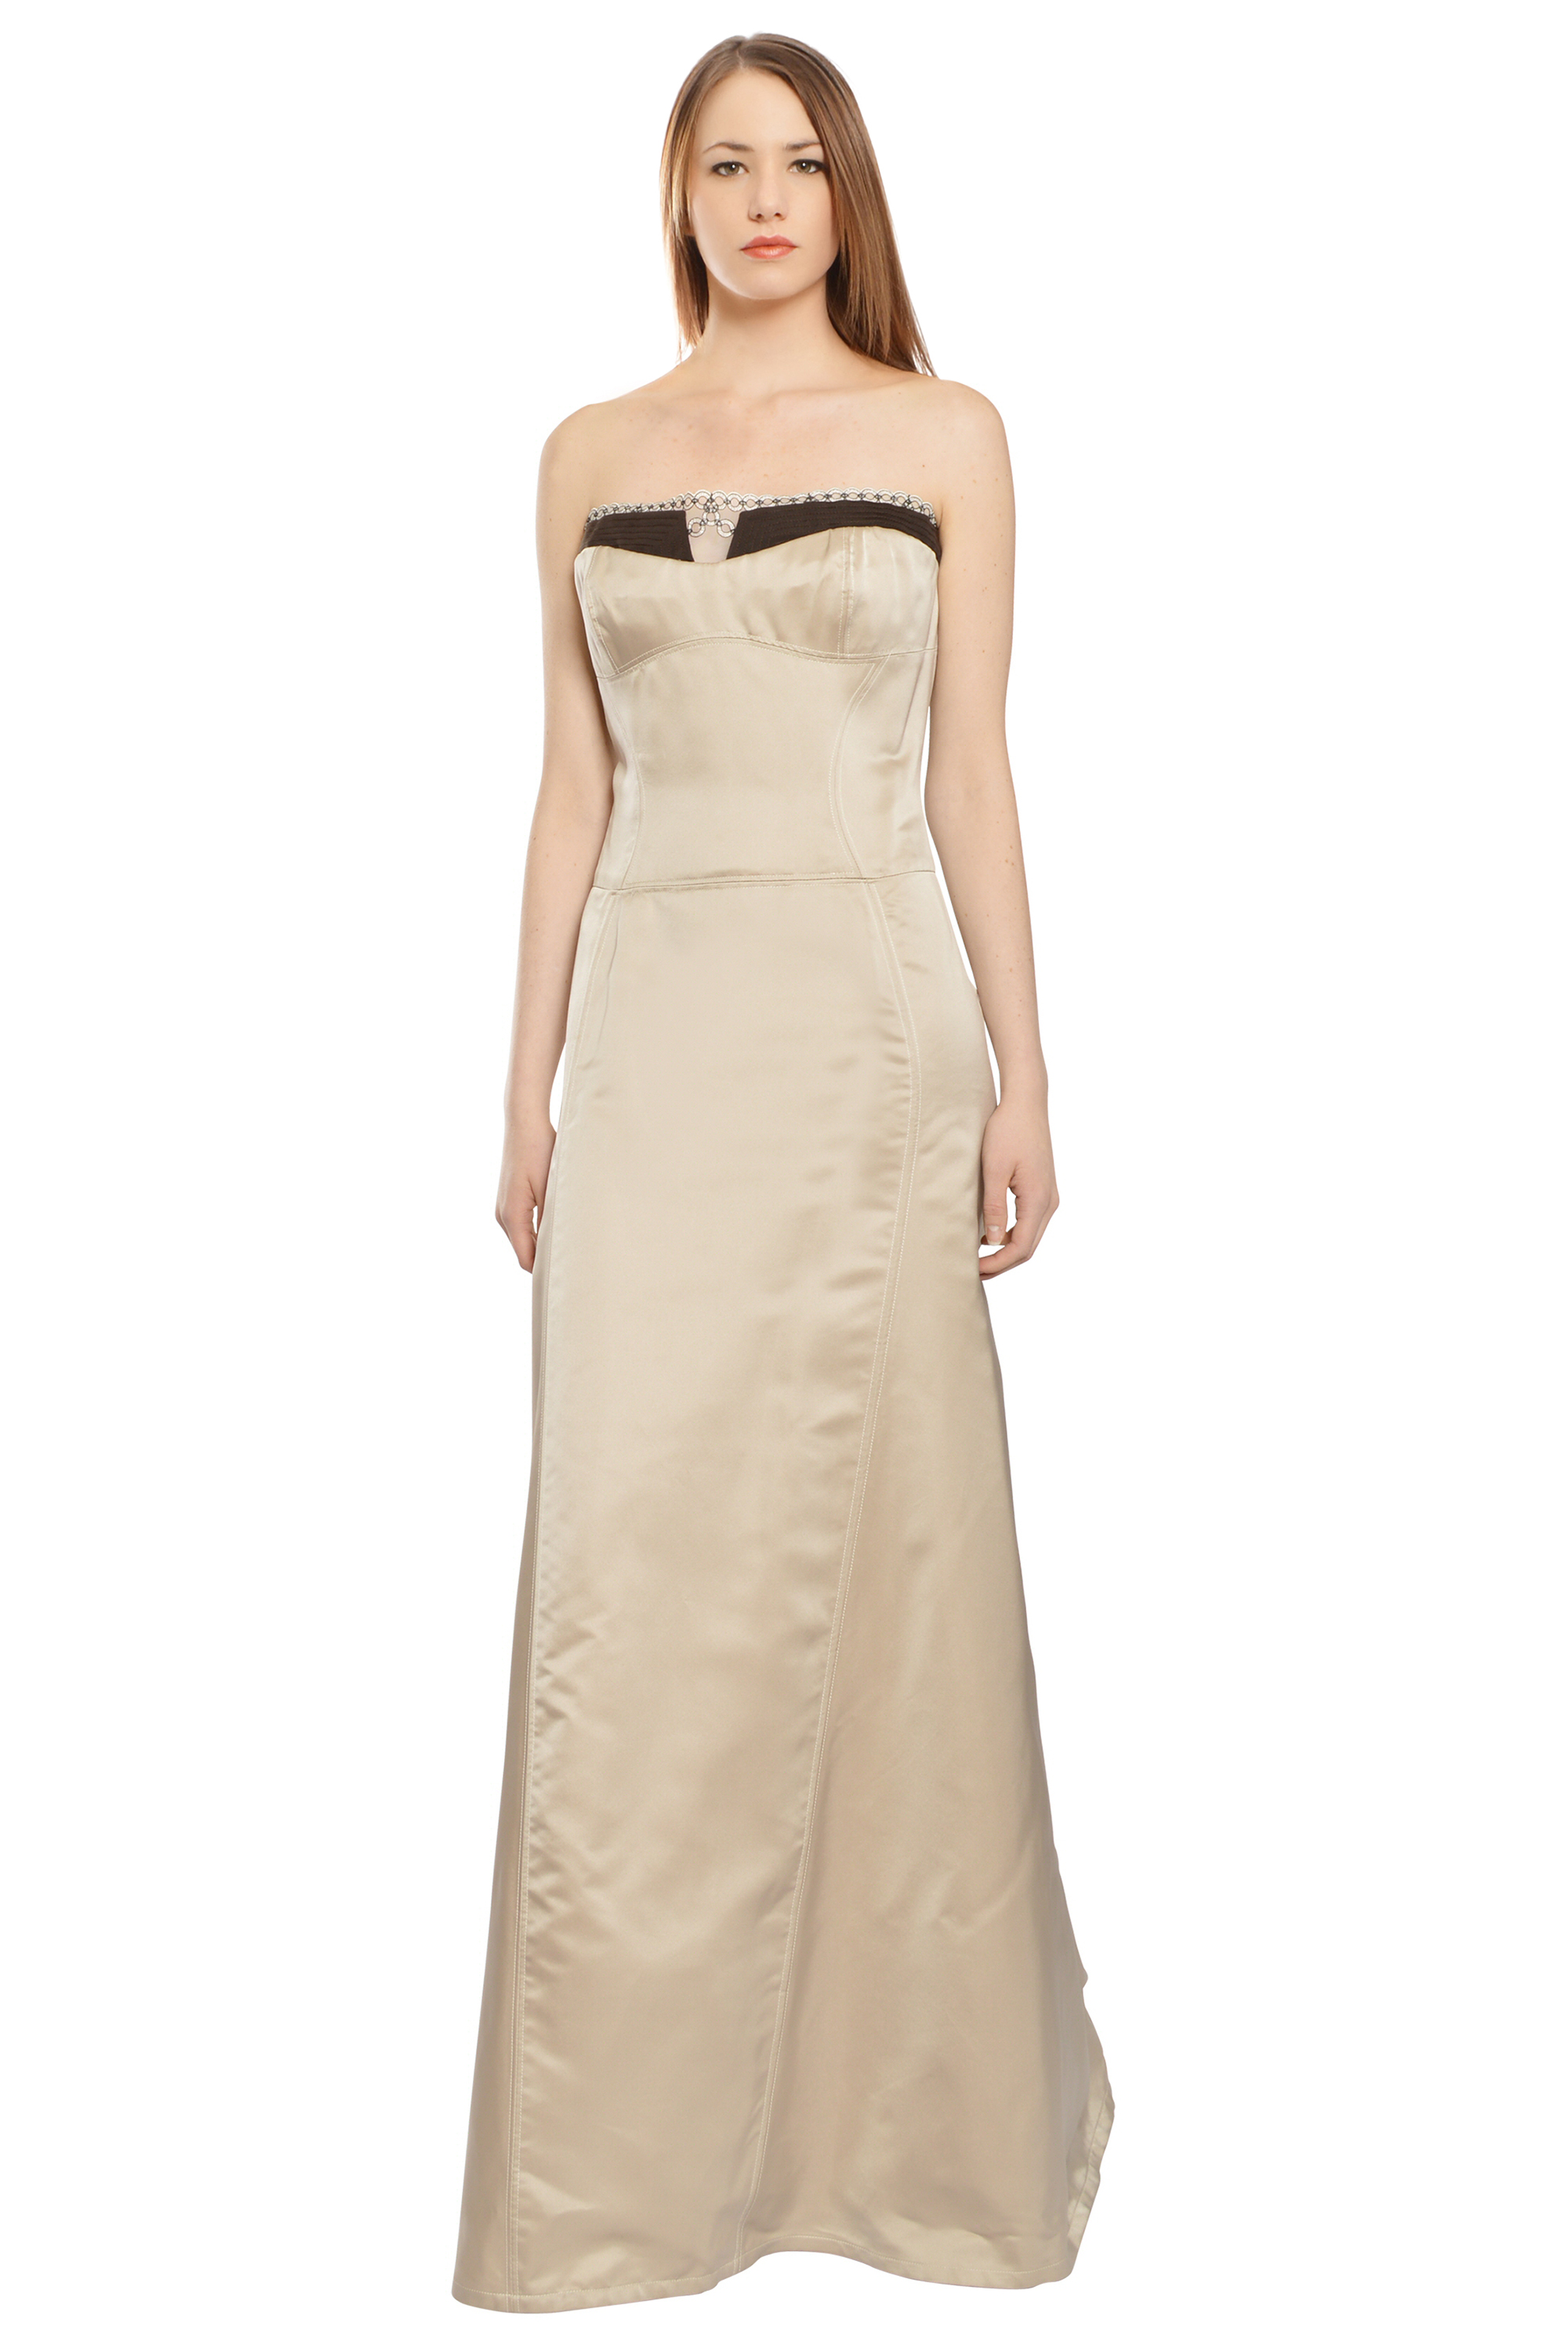 Carolina Herrera Taupe Embroidered Lace Strapless Evening Ball Gown ...